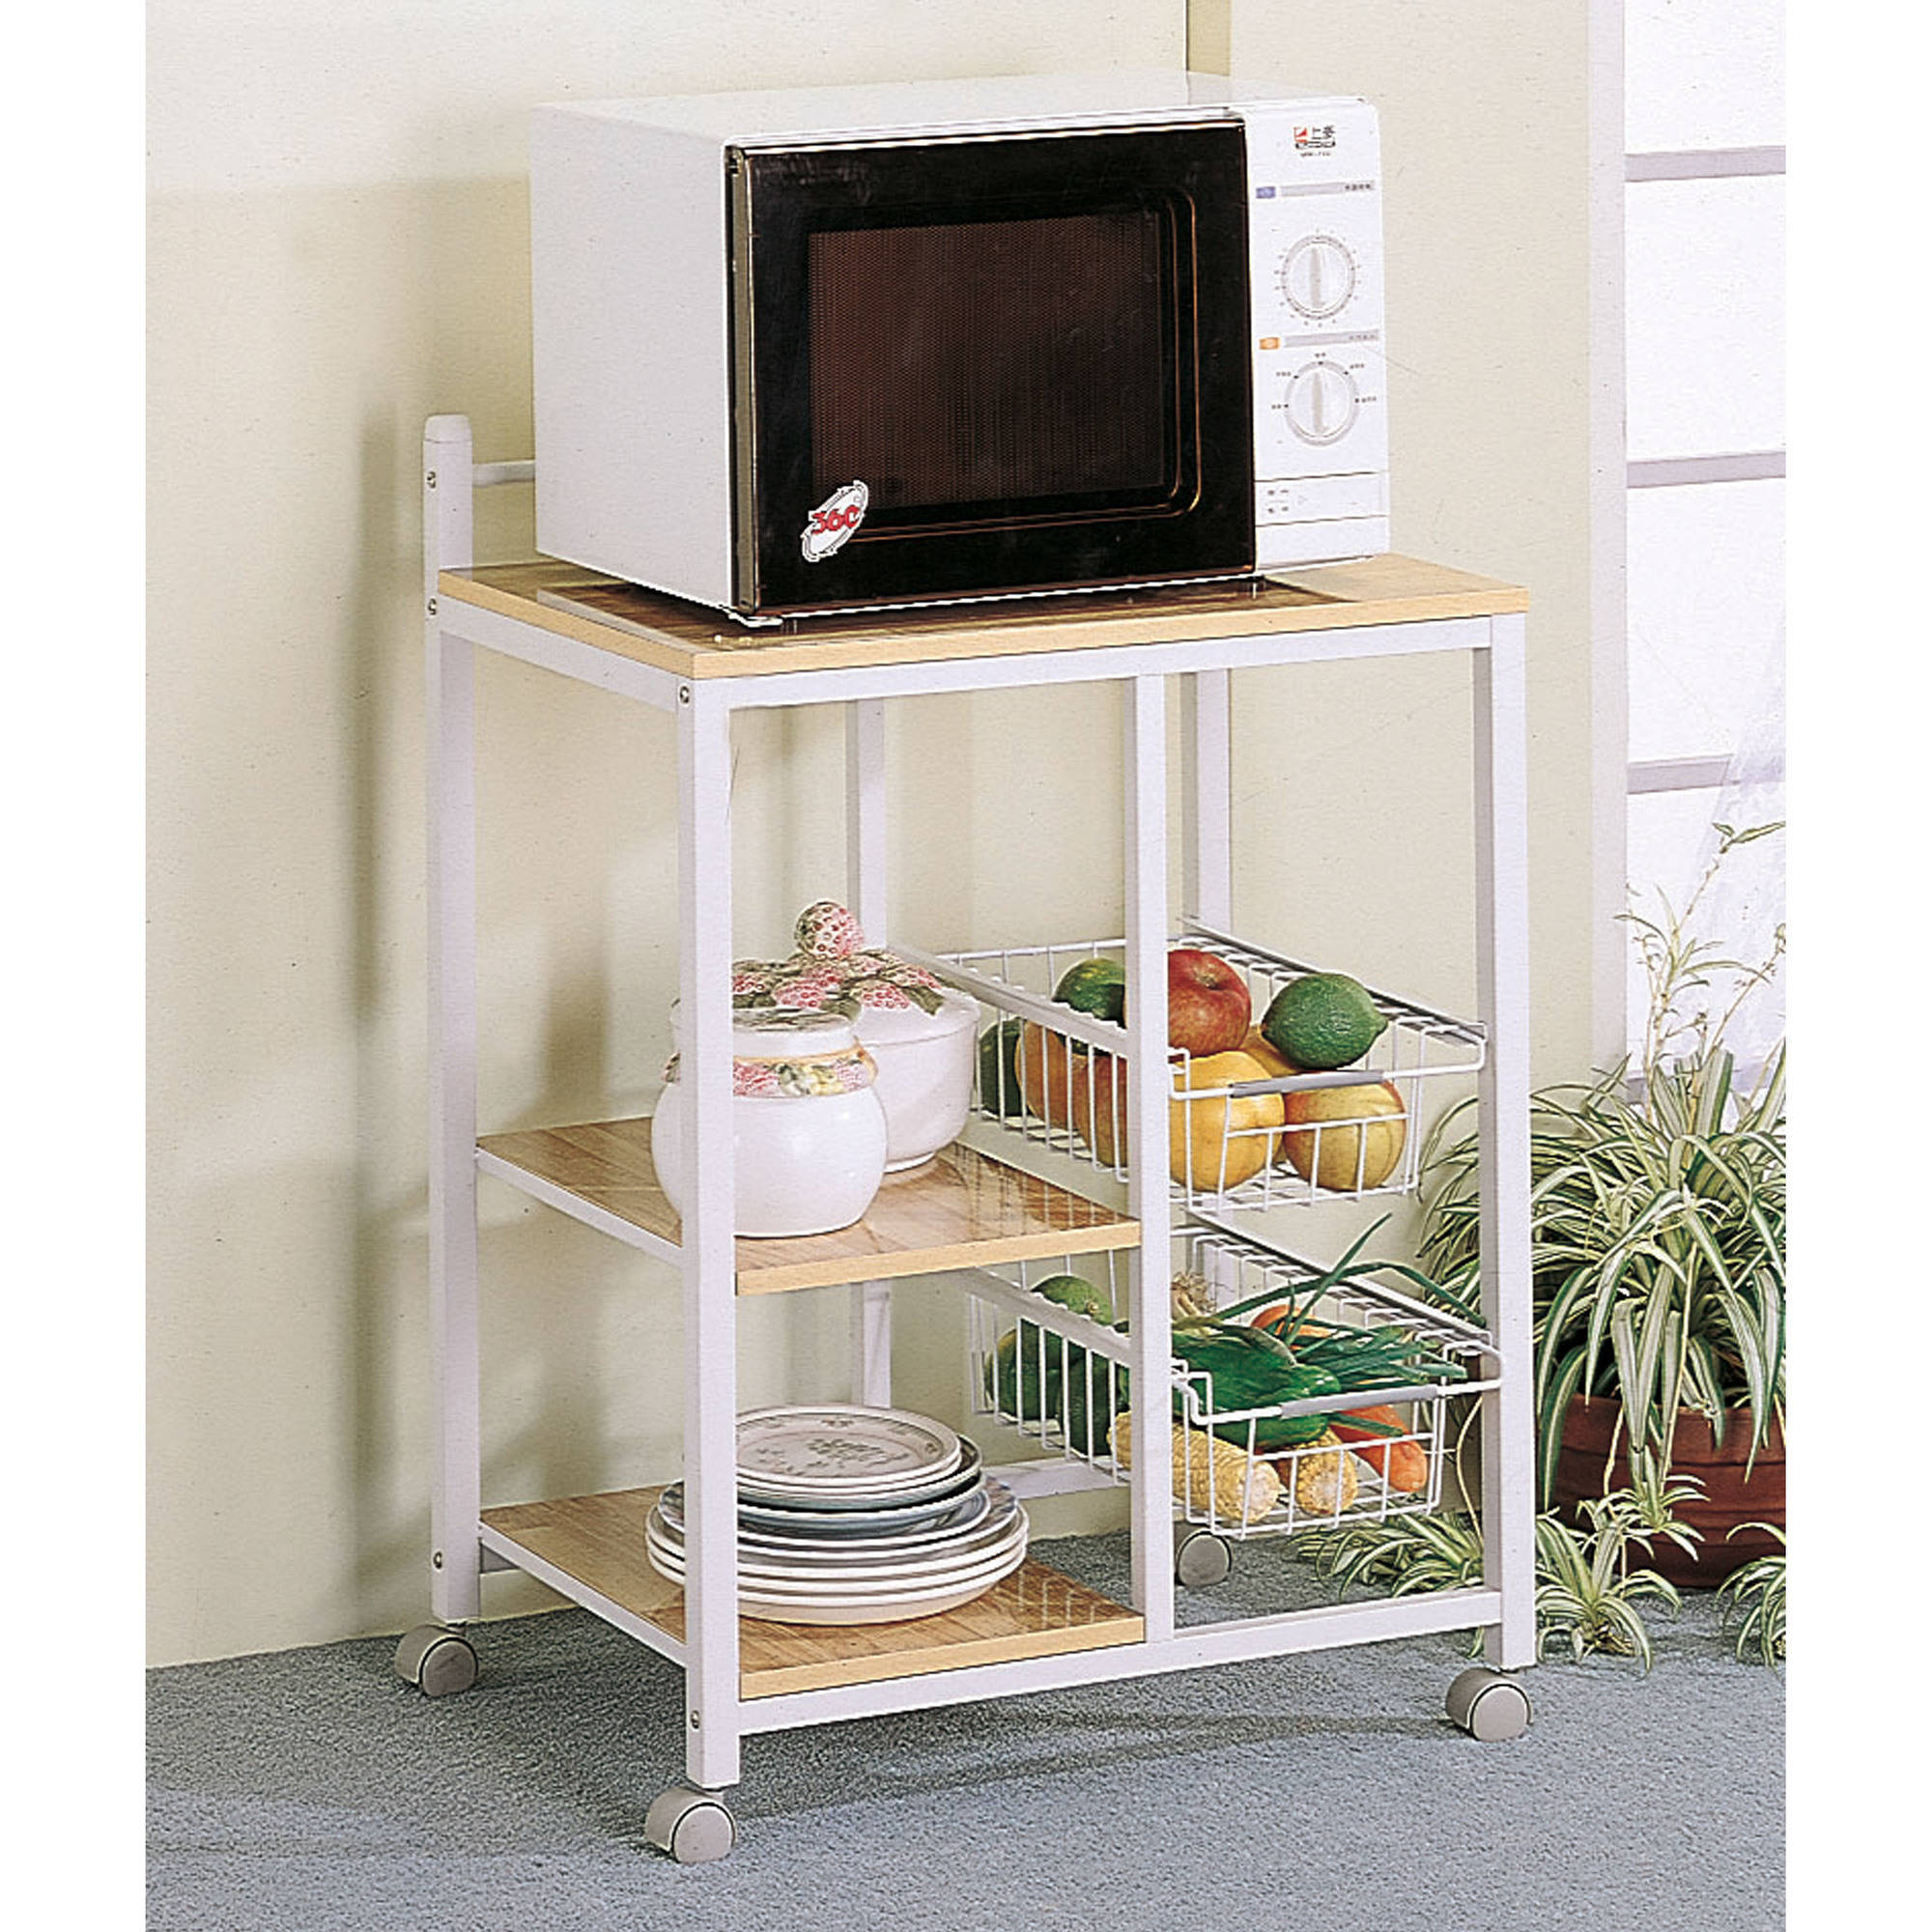 Coaster Kitchen/Microwave Cart